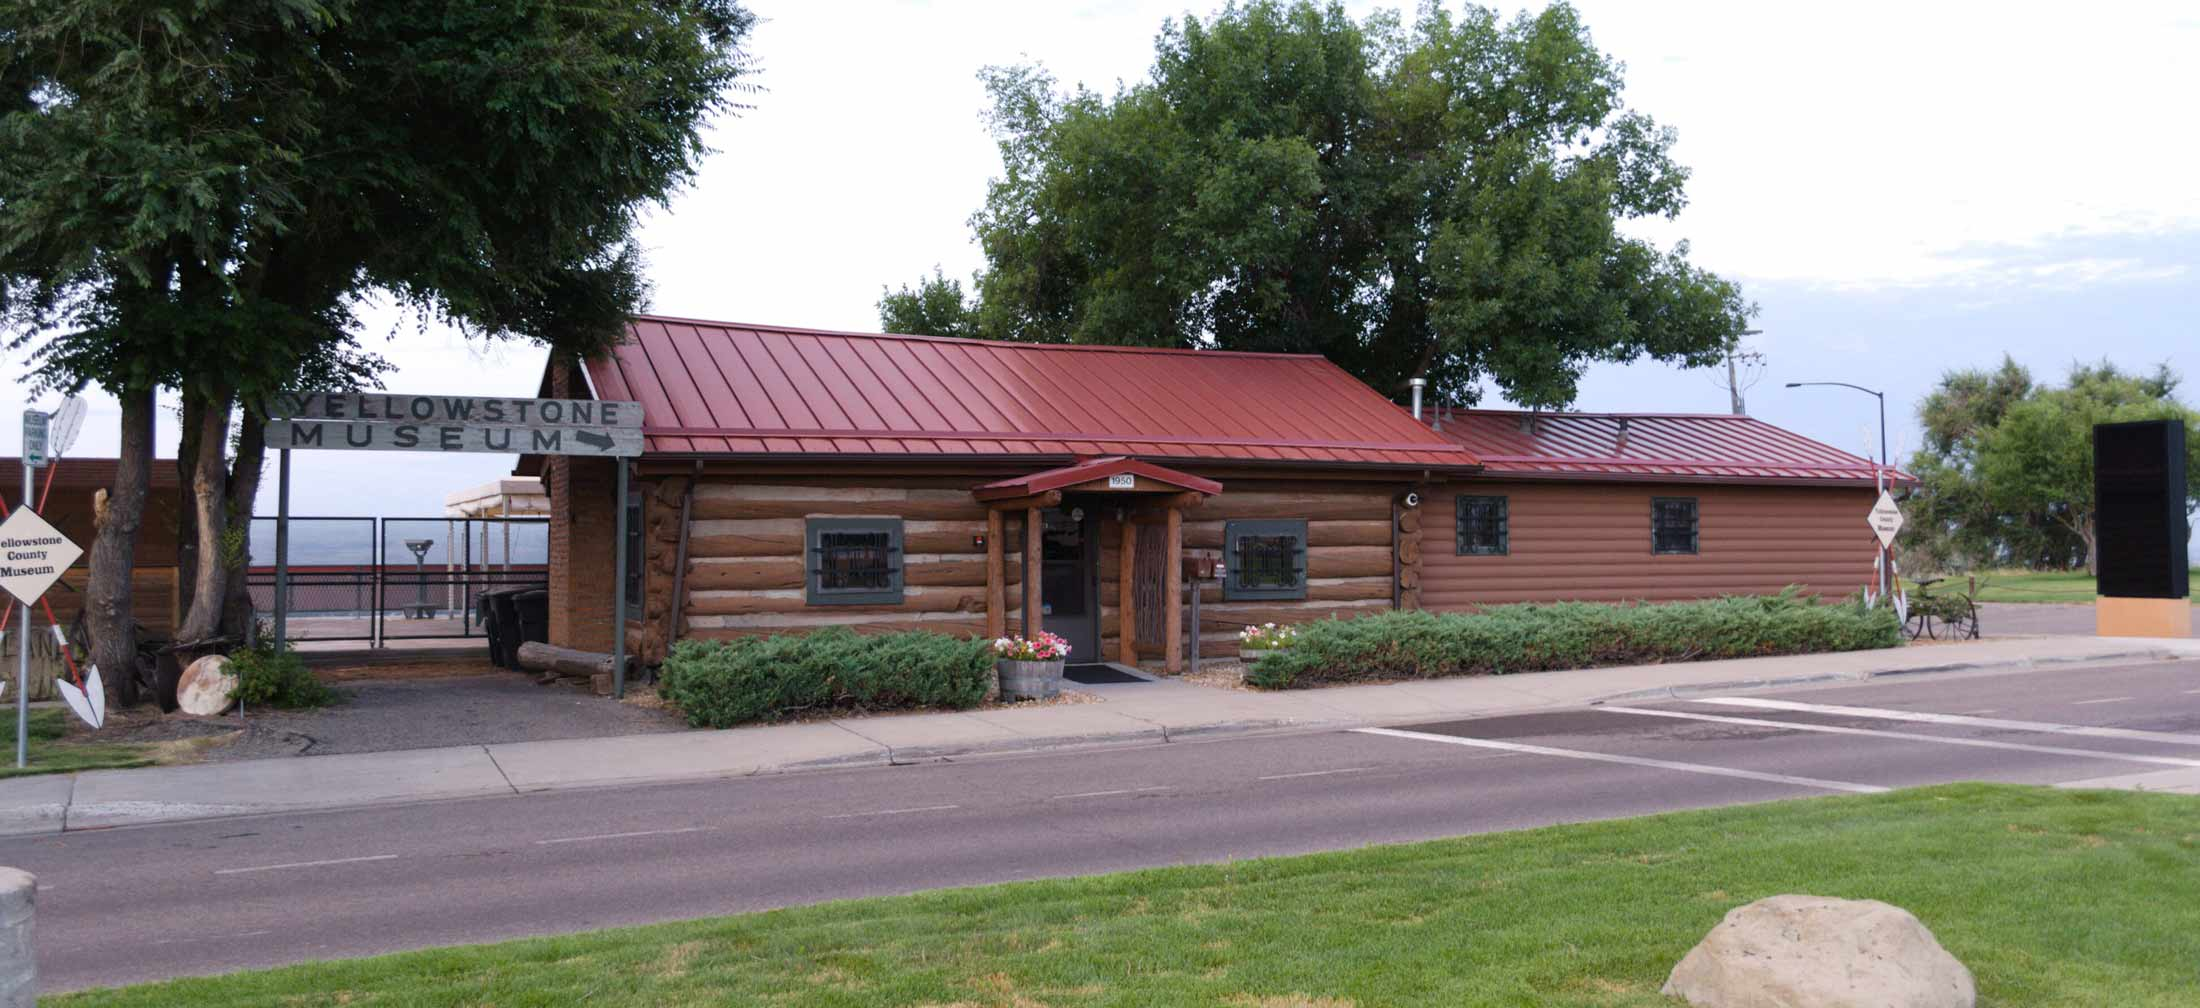 8 Rare Finds at the Yellowstone County Museum